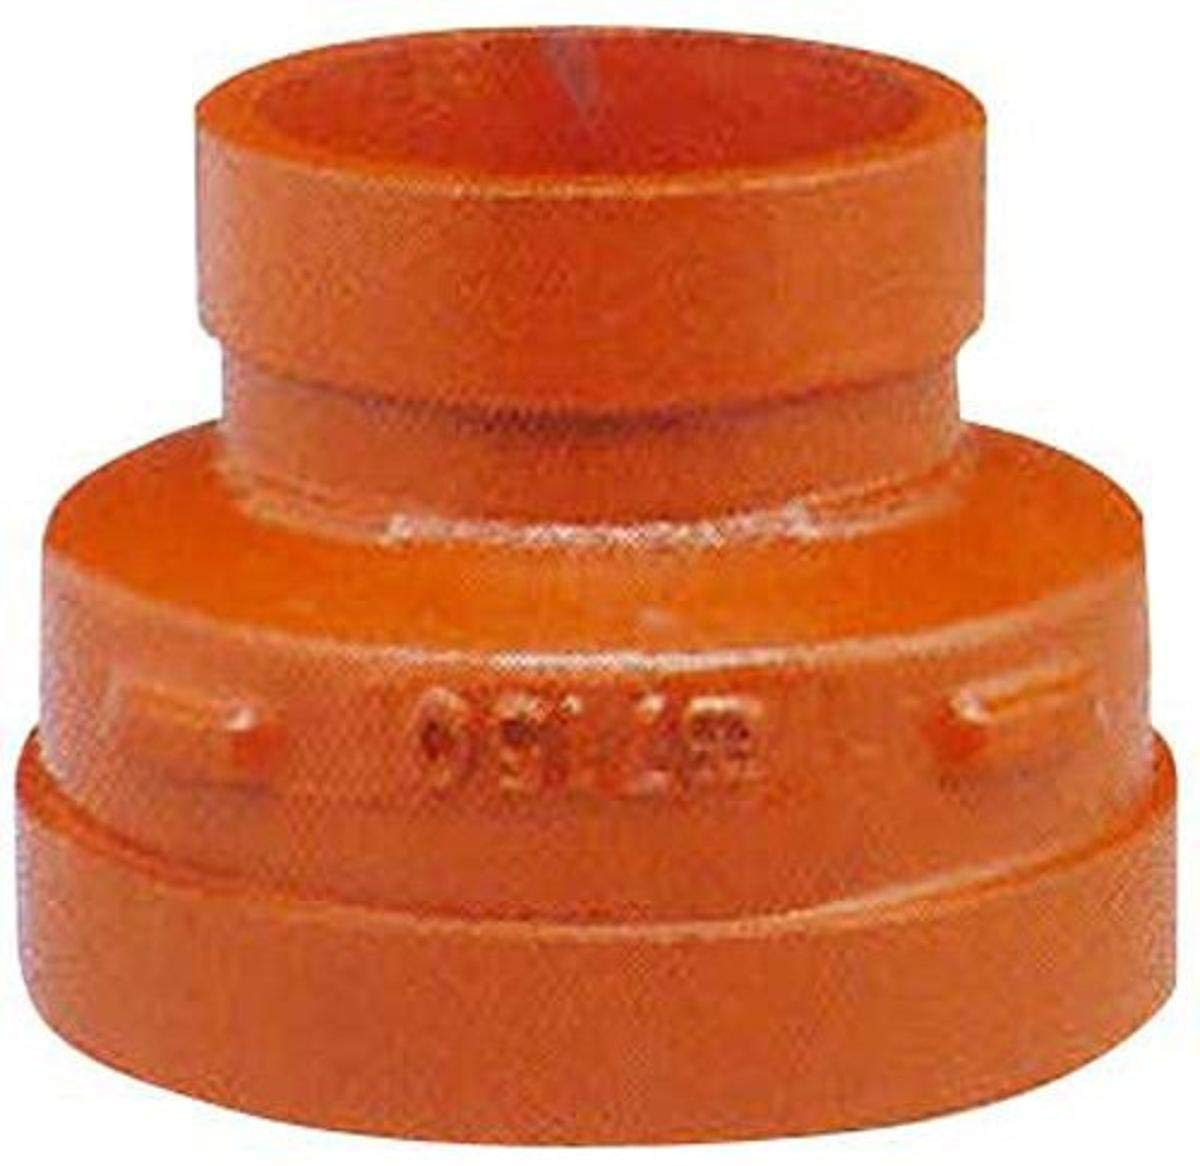 Outlet ☆ Free Shipping sold out Shurjoint 715031.5G-G # 7150 Ductile Iron Concentric Reducers G